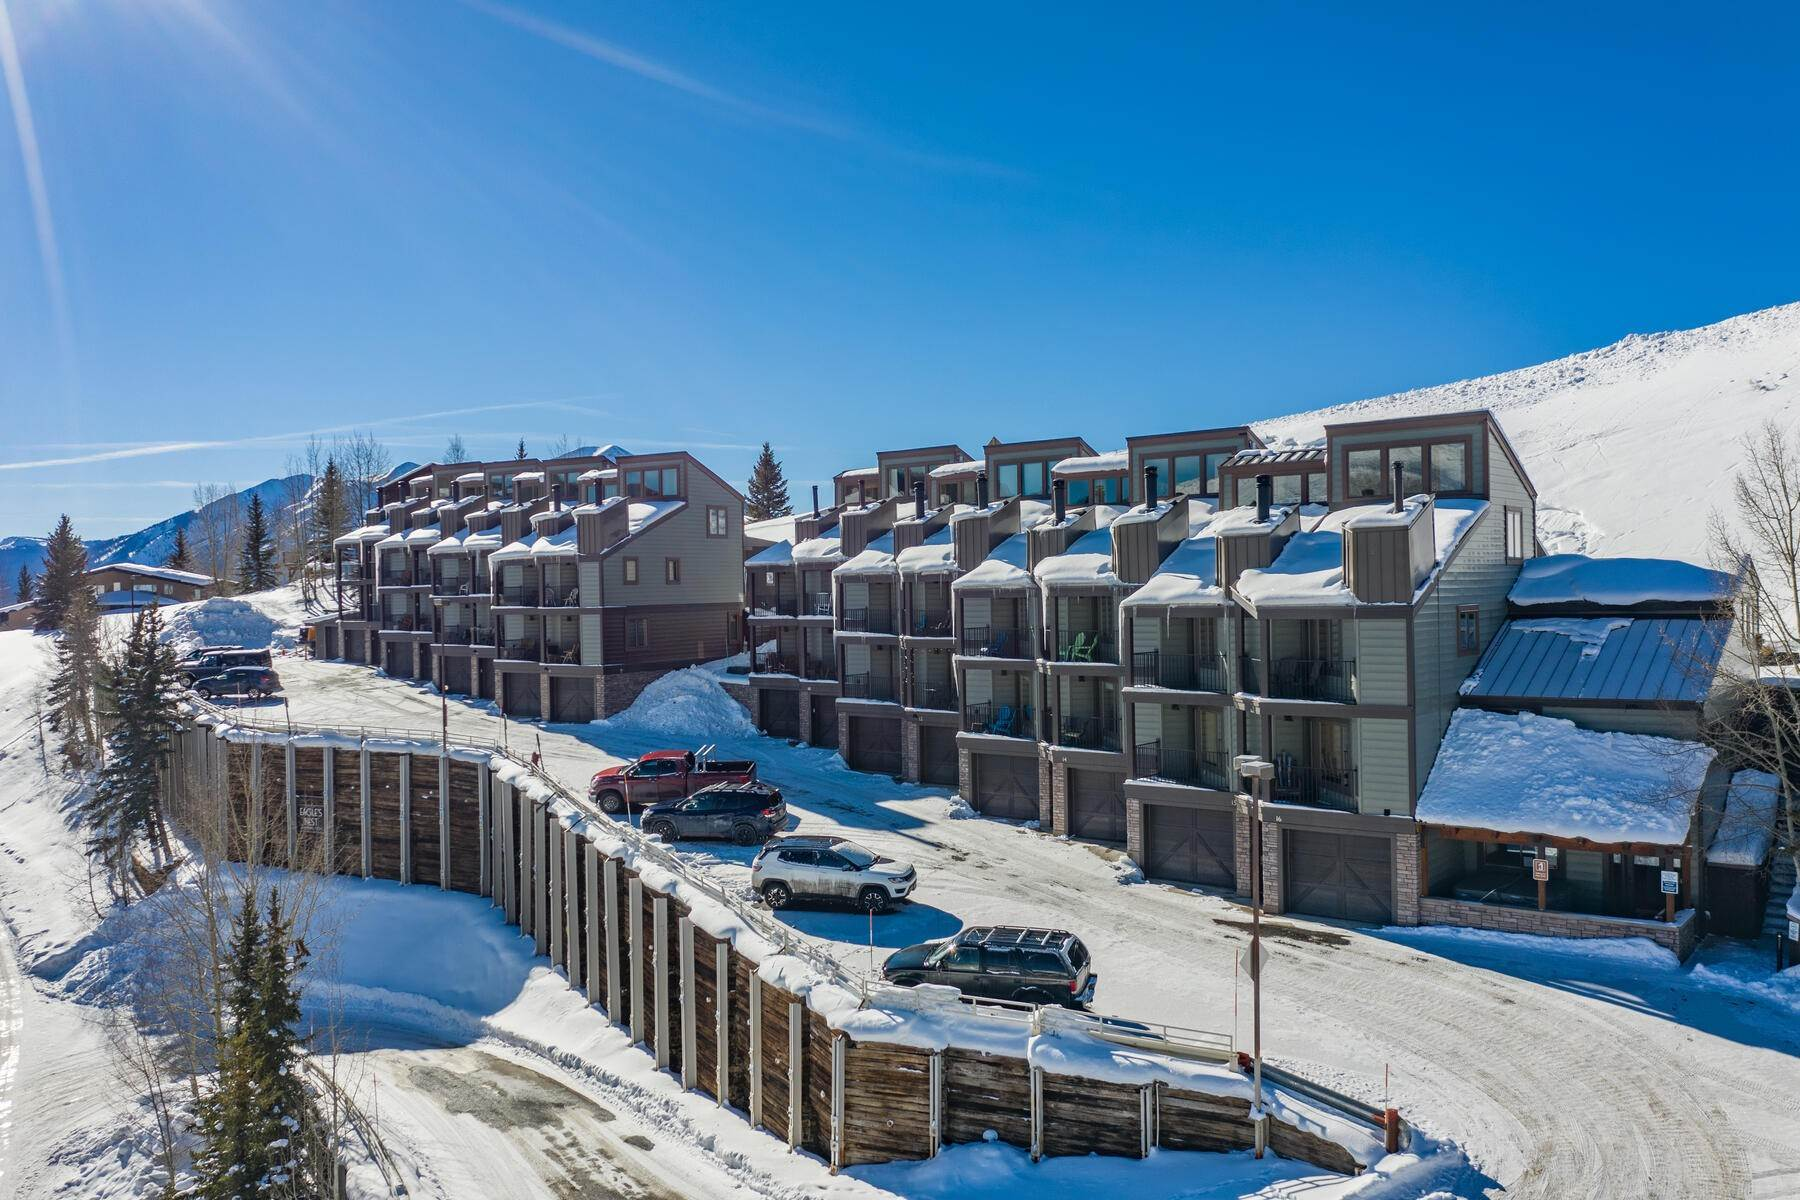 townhouses por un Venta en Beautiful Townhome in Mt Crested Butte 11 Morning Glory Way, Unit 13 Mount Crested Butte, Colorado 81225 Estados Unidos